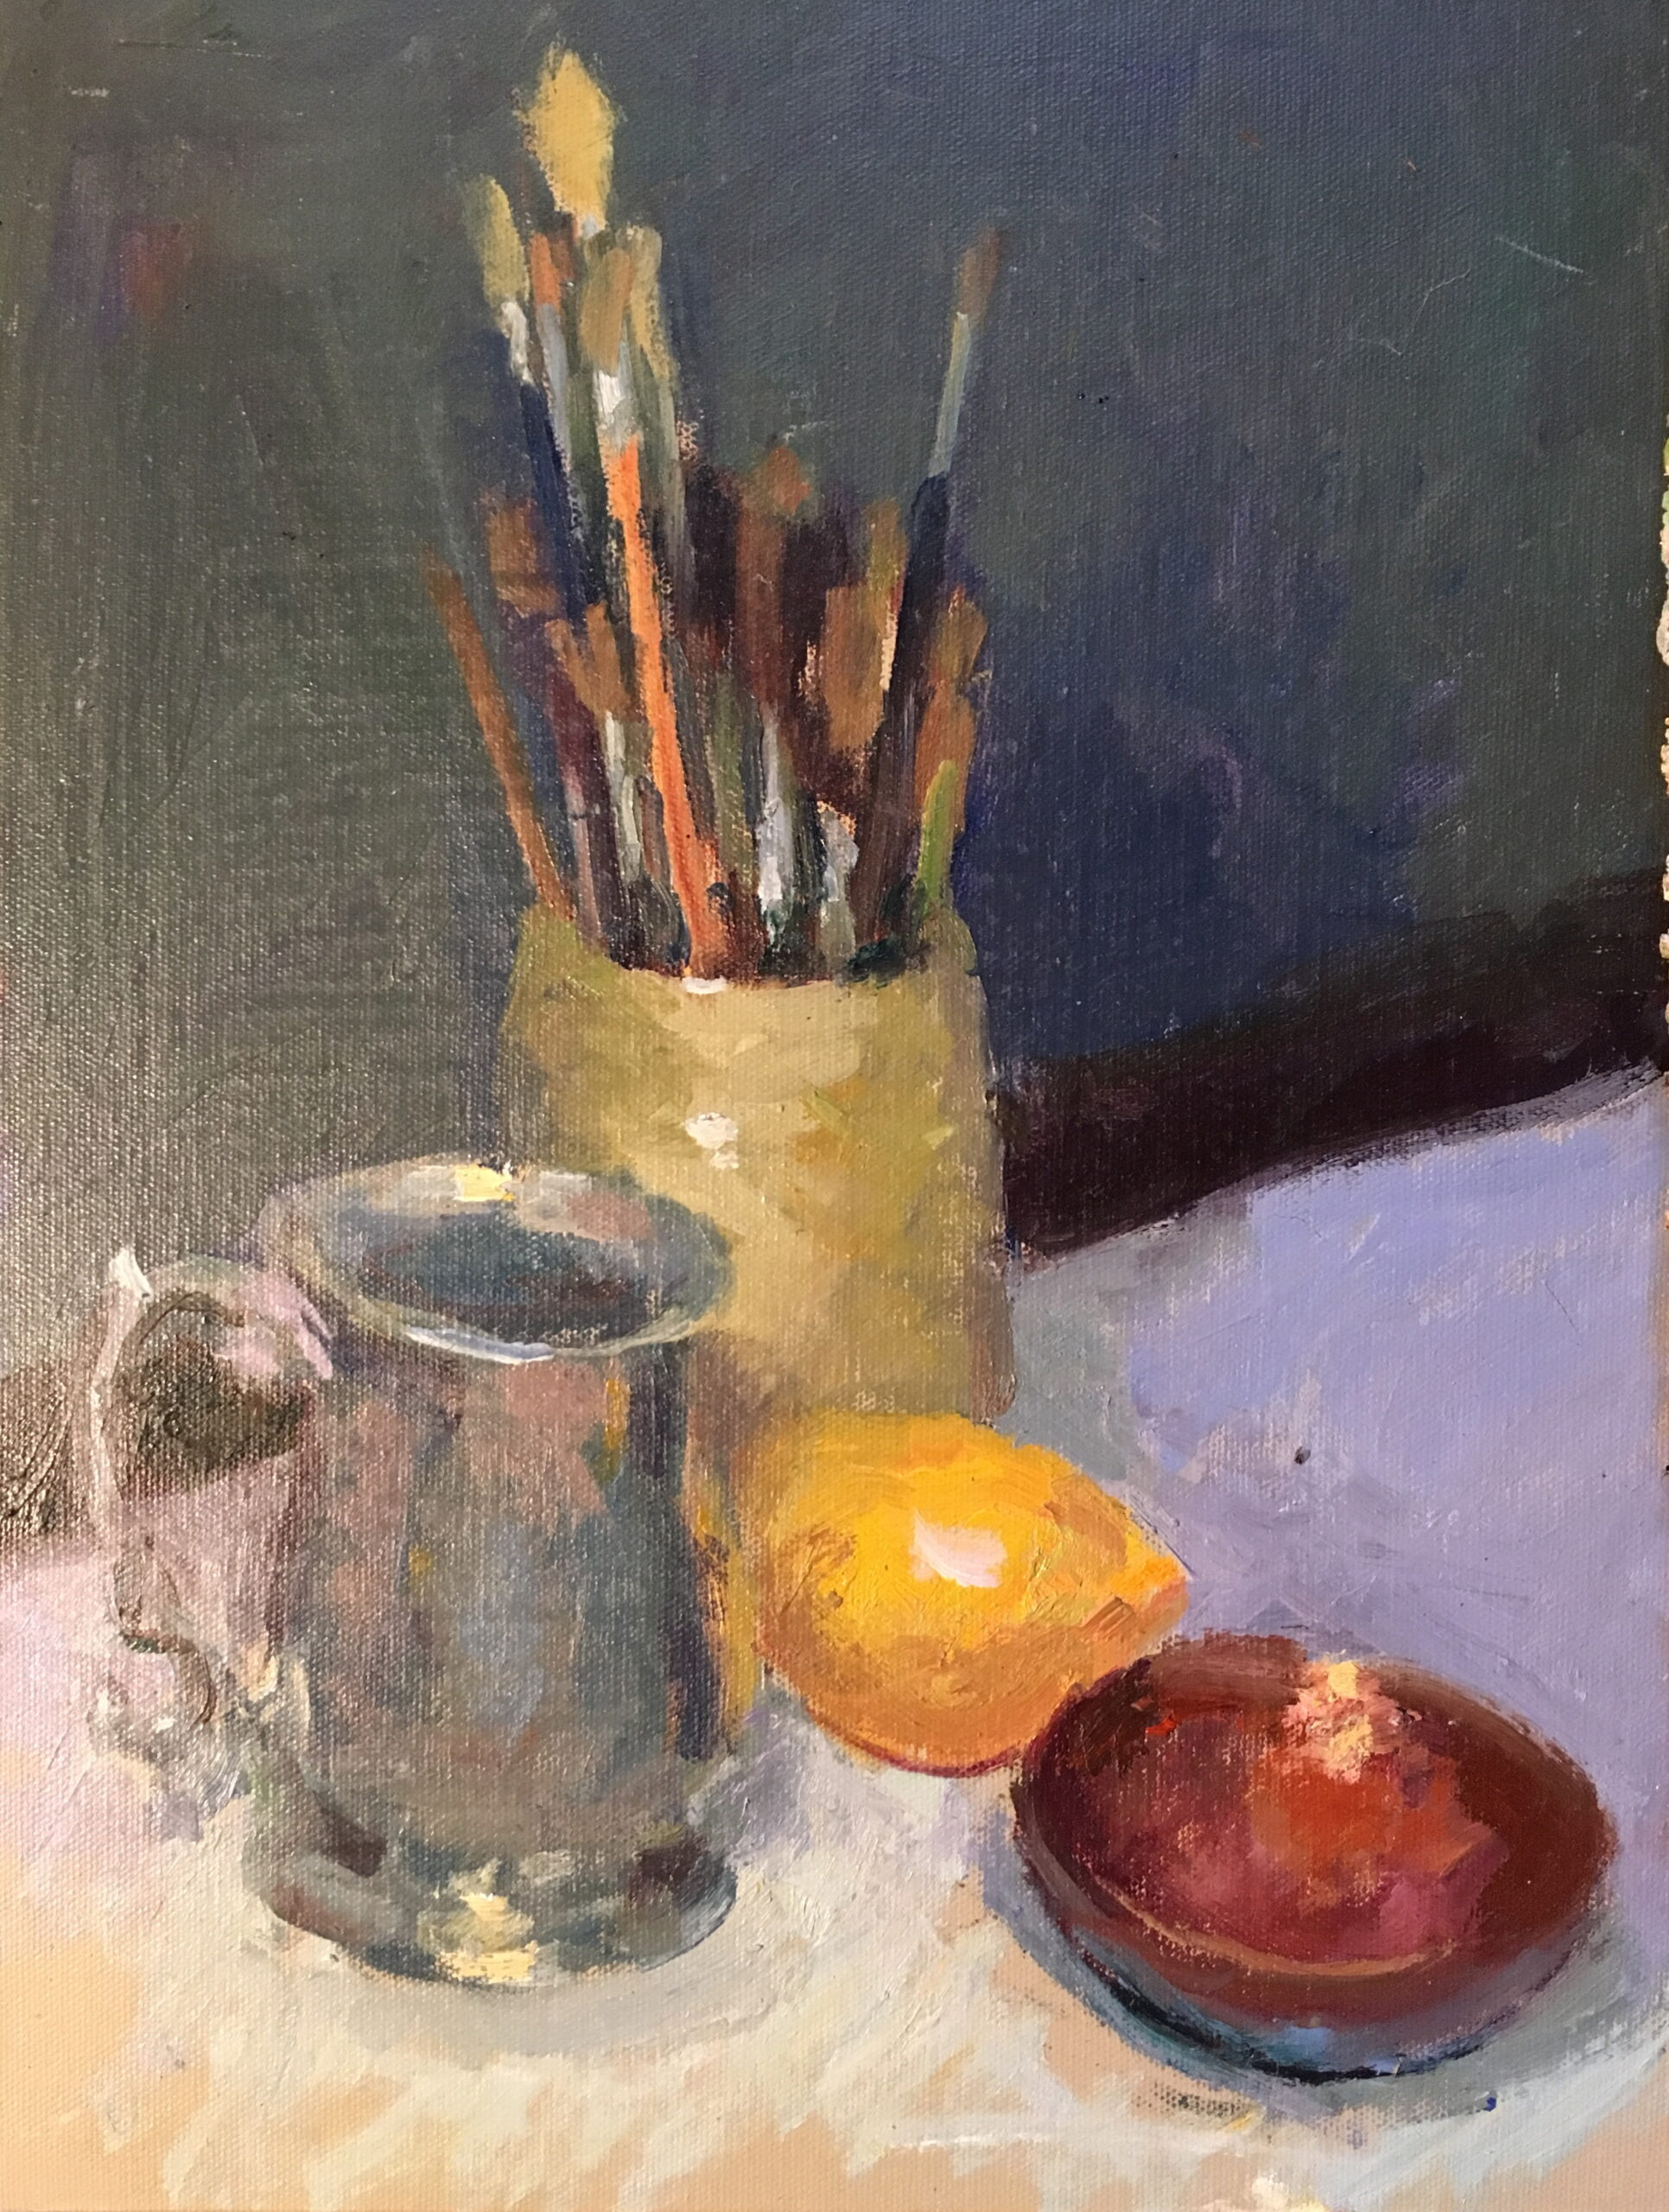 Pewter and Paint Brushes, Oil on Canvas on Panel, 16 x 12 Inches, by Susan Grisell, $325